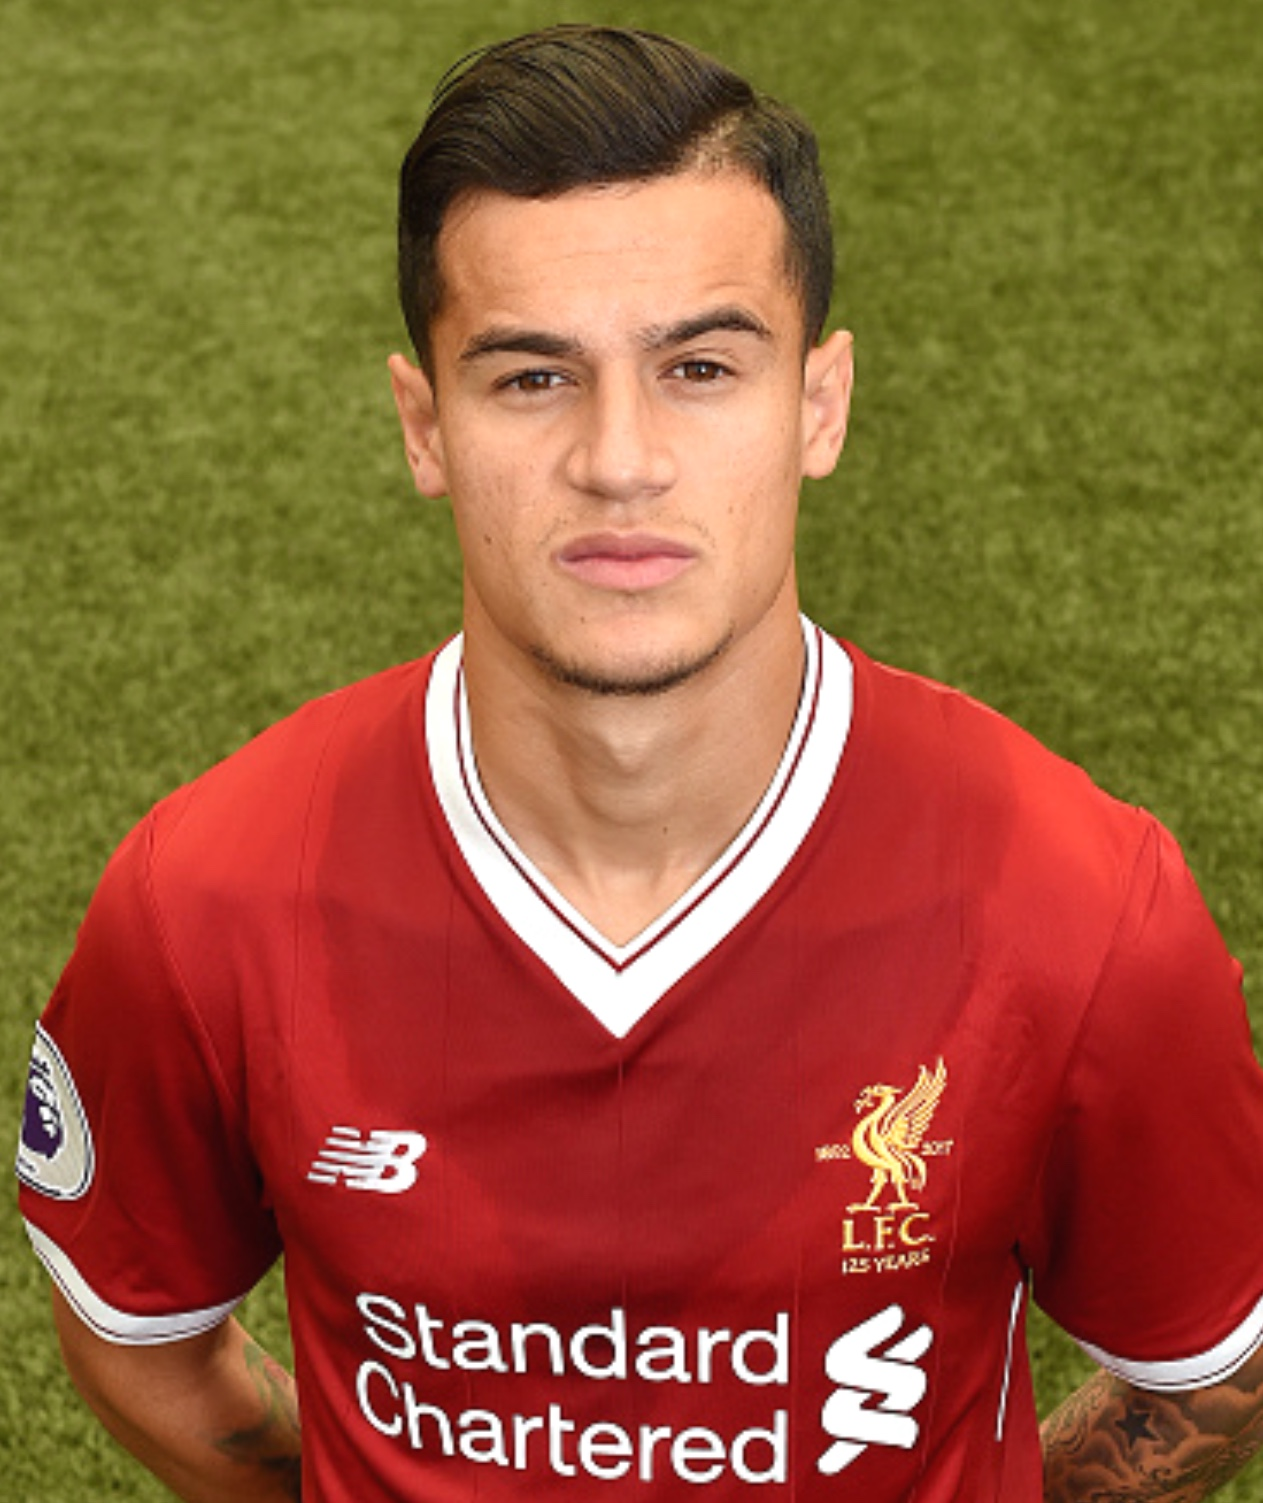 competitive price 2837e 31bf4 Philippe Coutinho | Liverpool FC Wiki | FANDOM powered by Wikia